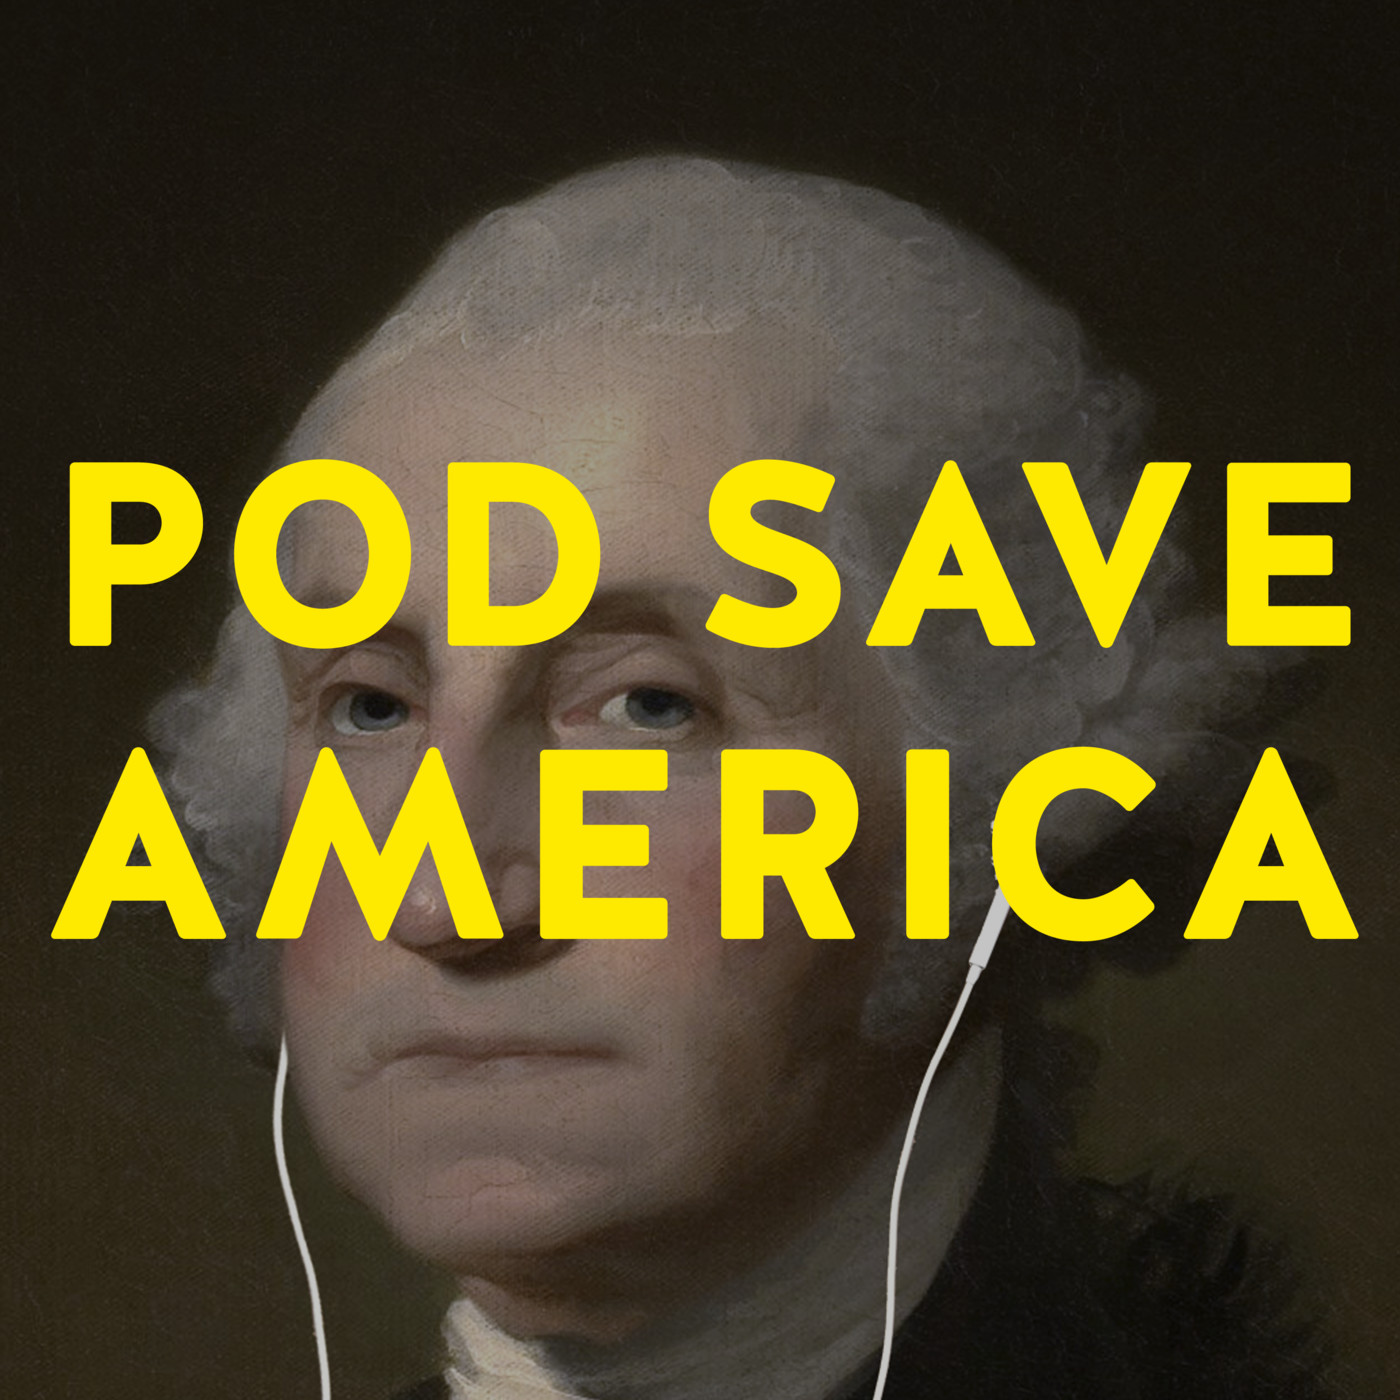 pod save america podcast review.jpeg